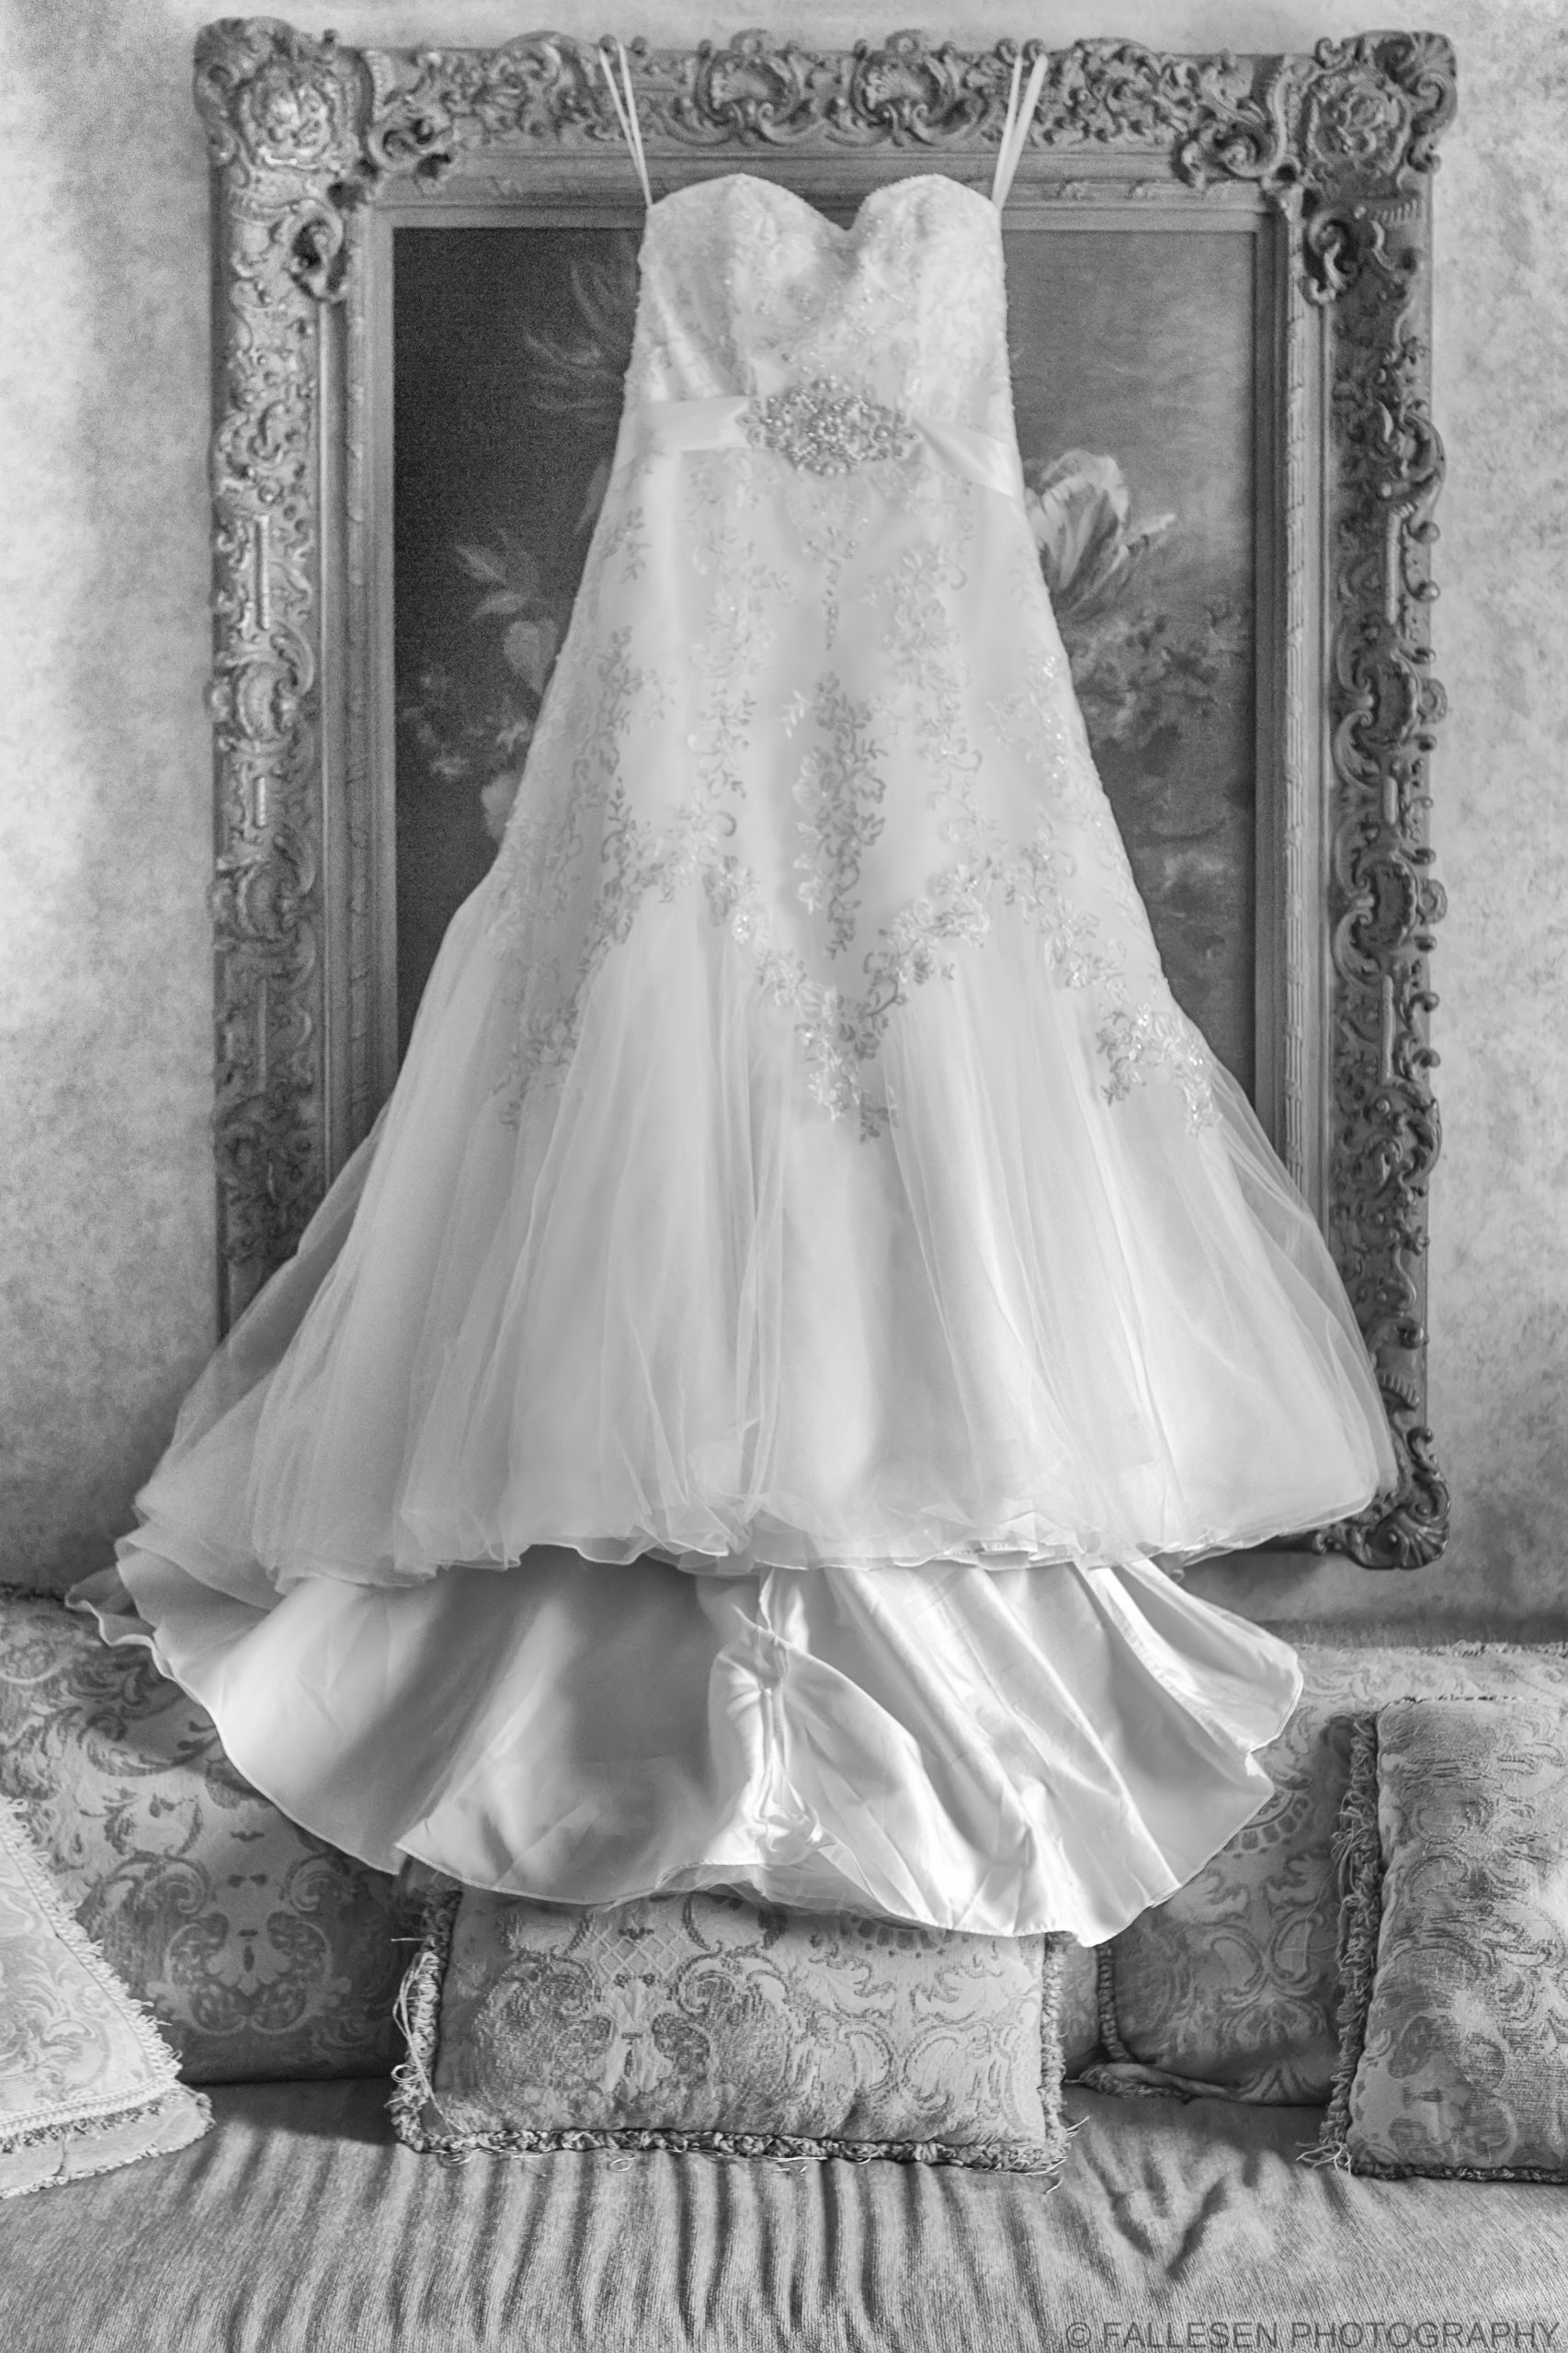 Before wedding photo Herberger Wedding, wedding gown at Salvatore's Grand Hotel in Buffalo, NY by Fallesen Photography LLC